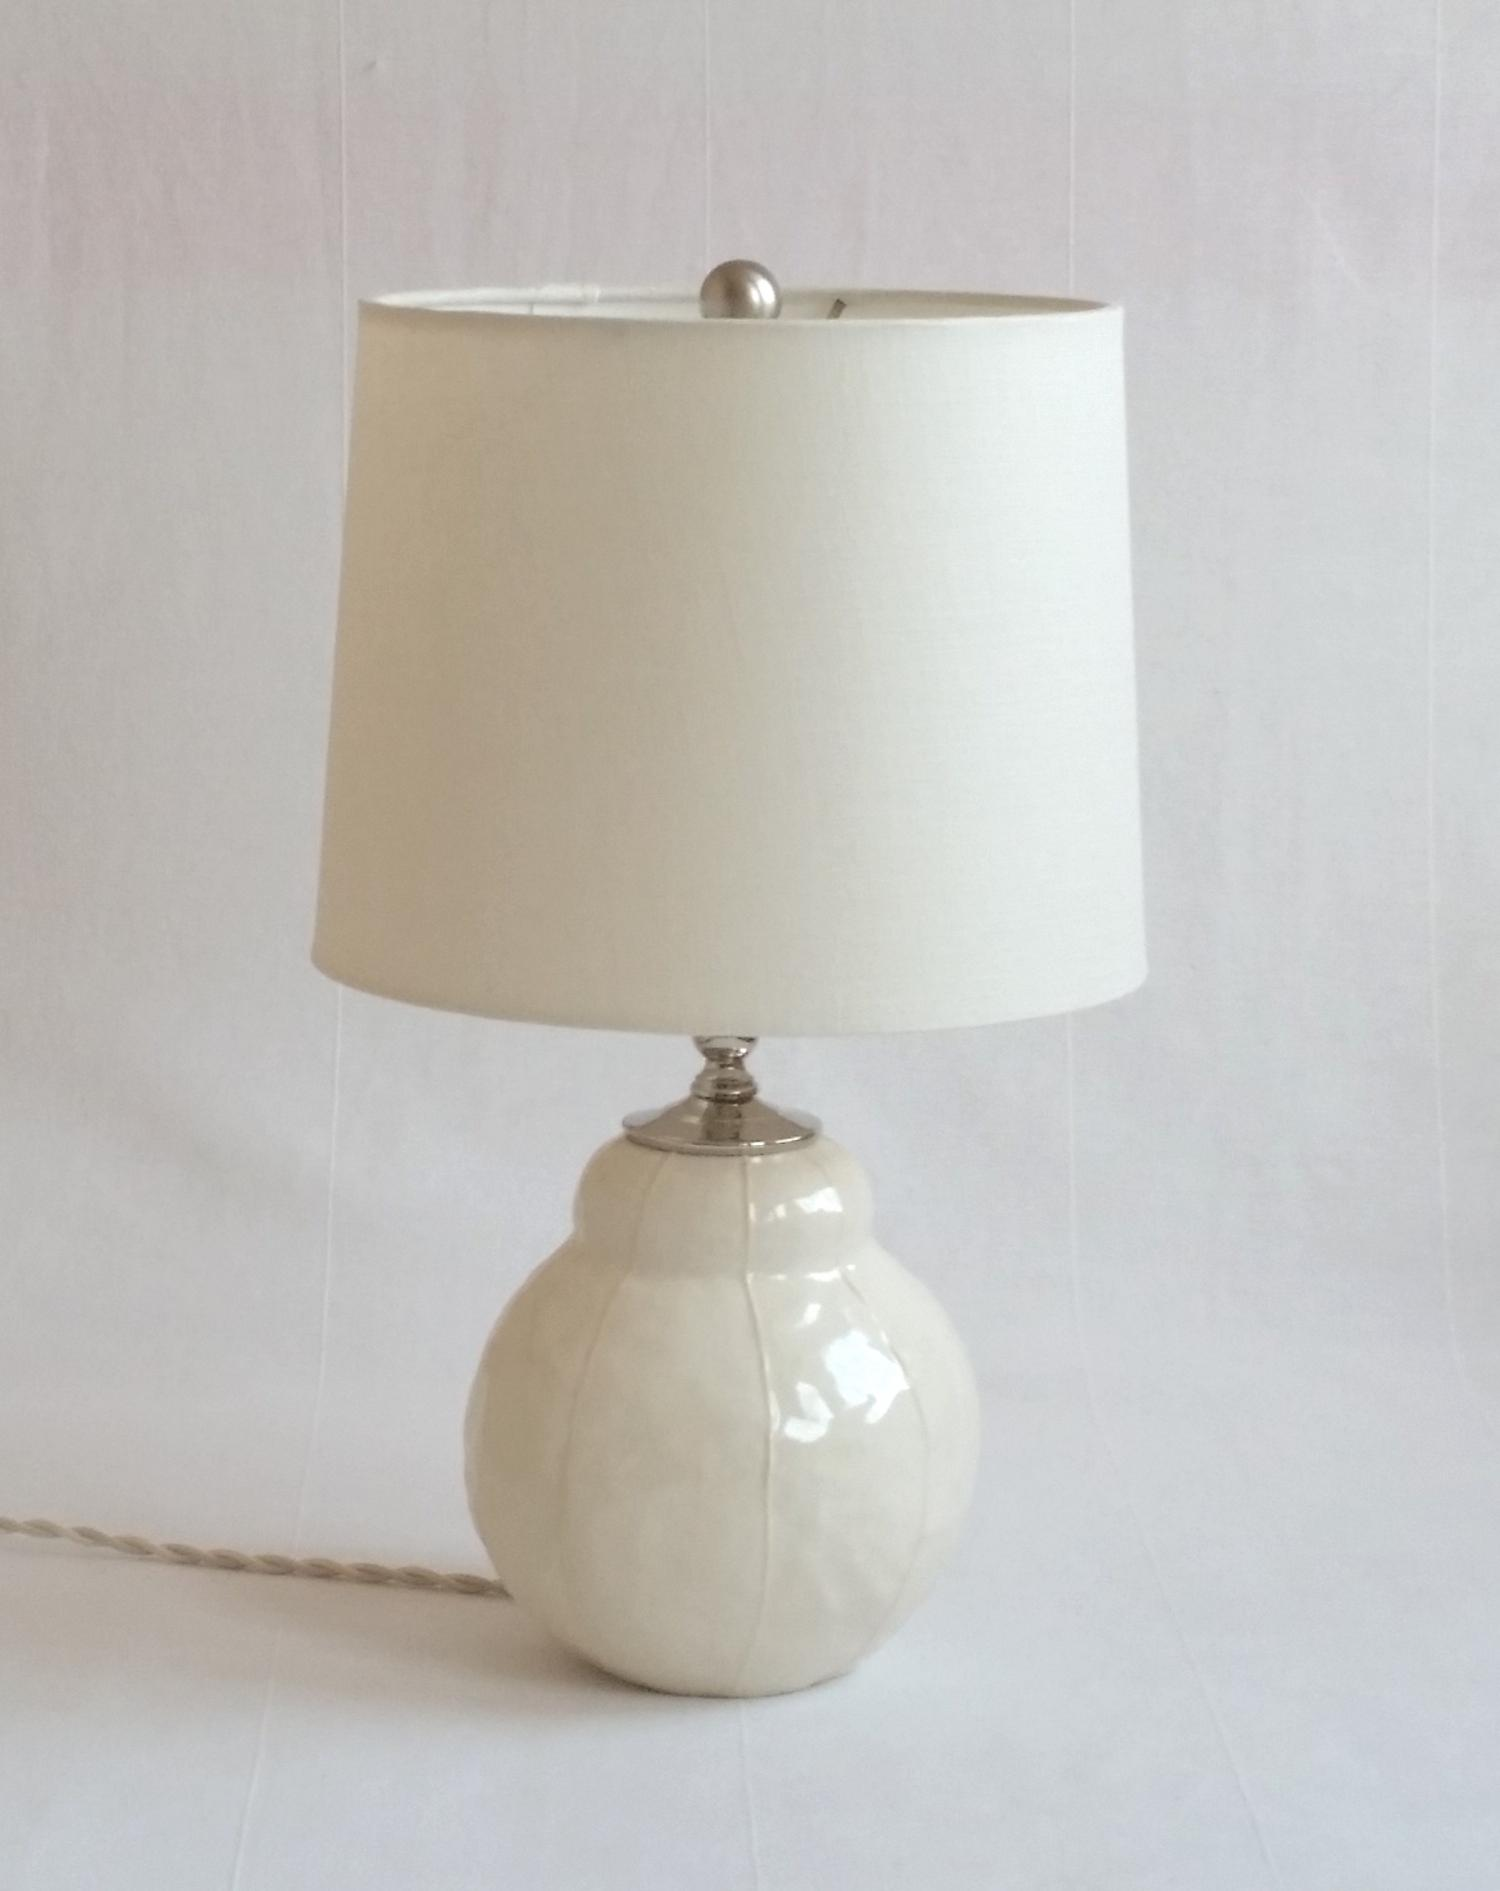 VIT ceramics Bubble lamp, drum shade, white, contemporary pottery lamp base, modern, handmade, Kri Kri Studio, Seattle